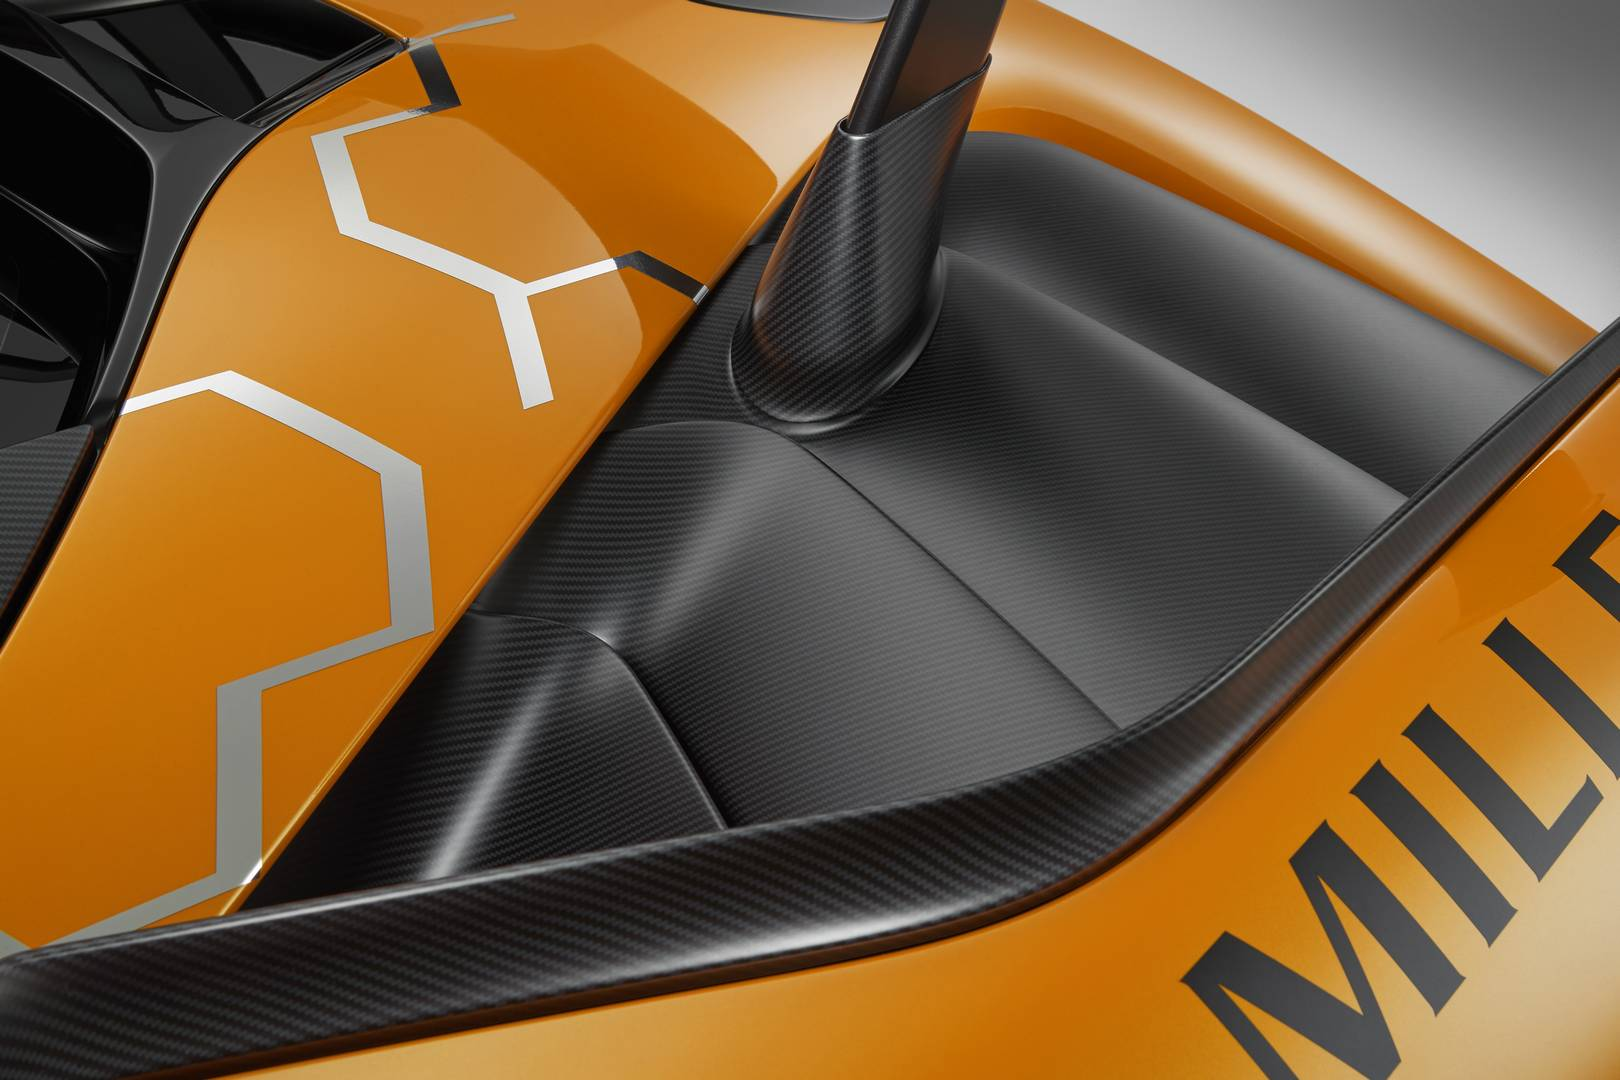 McLaren turns it up to eleven with the Senna GTR Concept